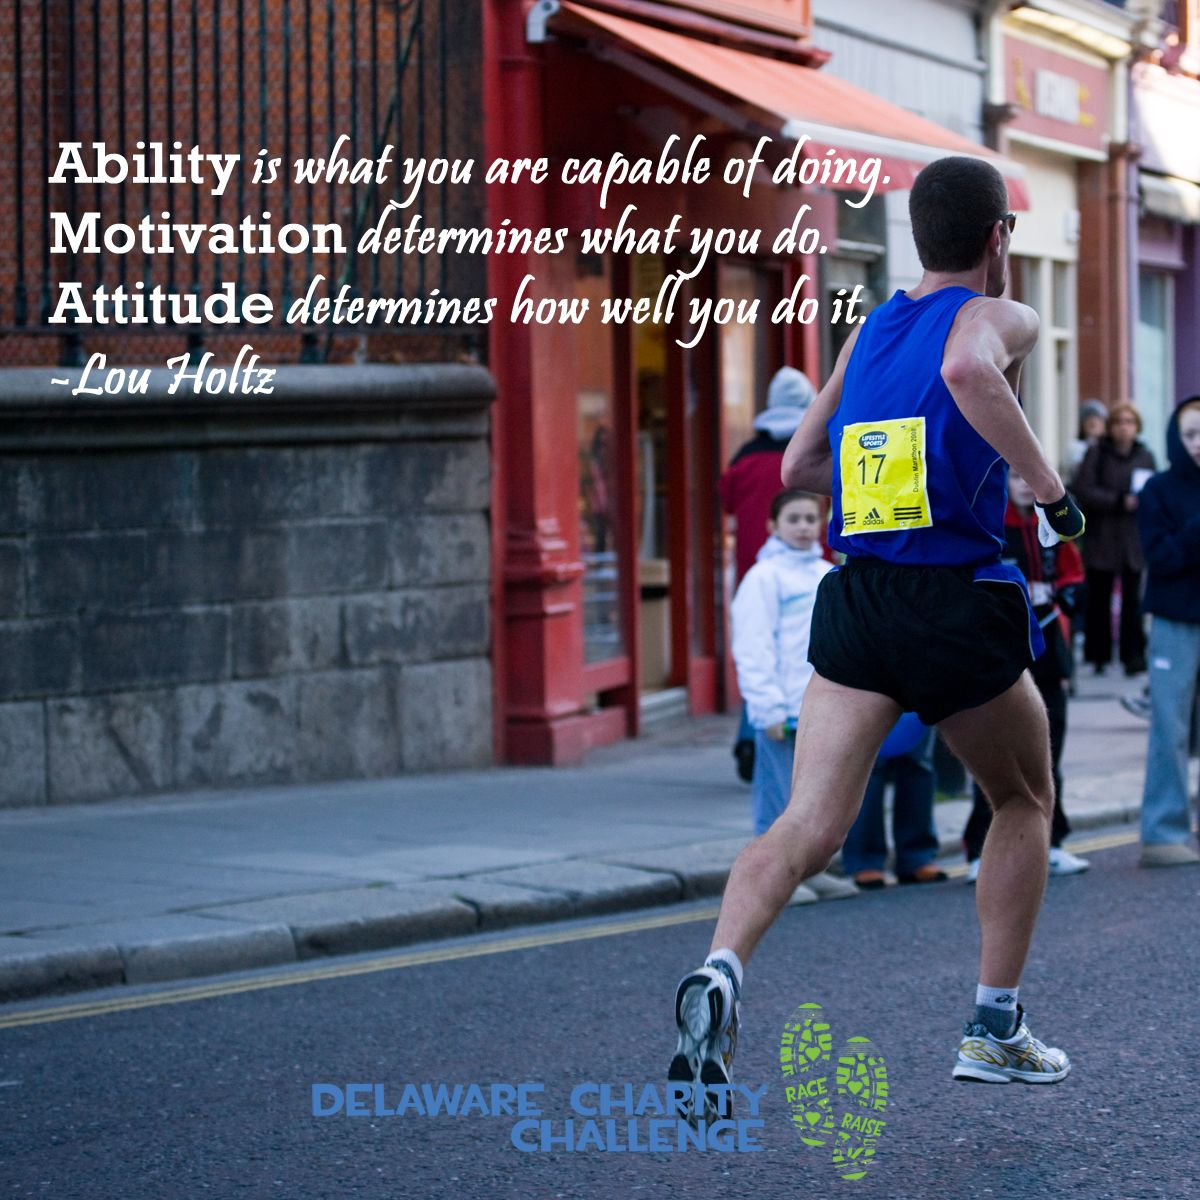 Ability is what you are capable of doing. Motivation determines what you do. Attitude determines how well you do it - Delaware Charity Challenge motivational running quote